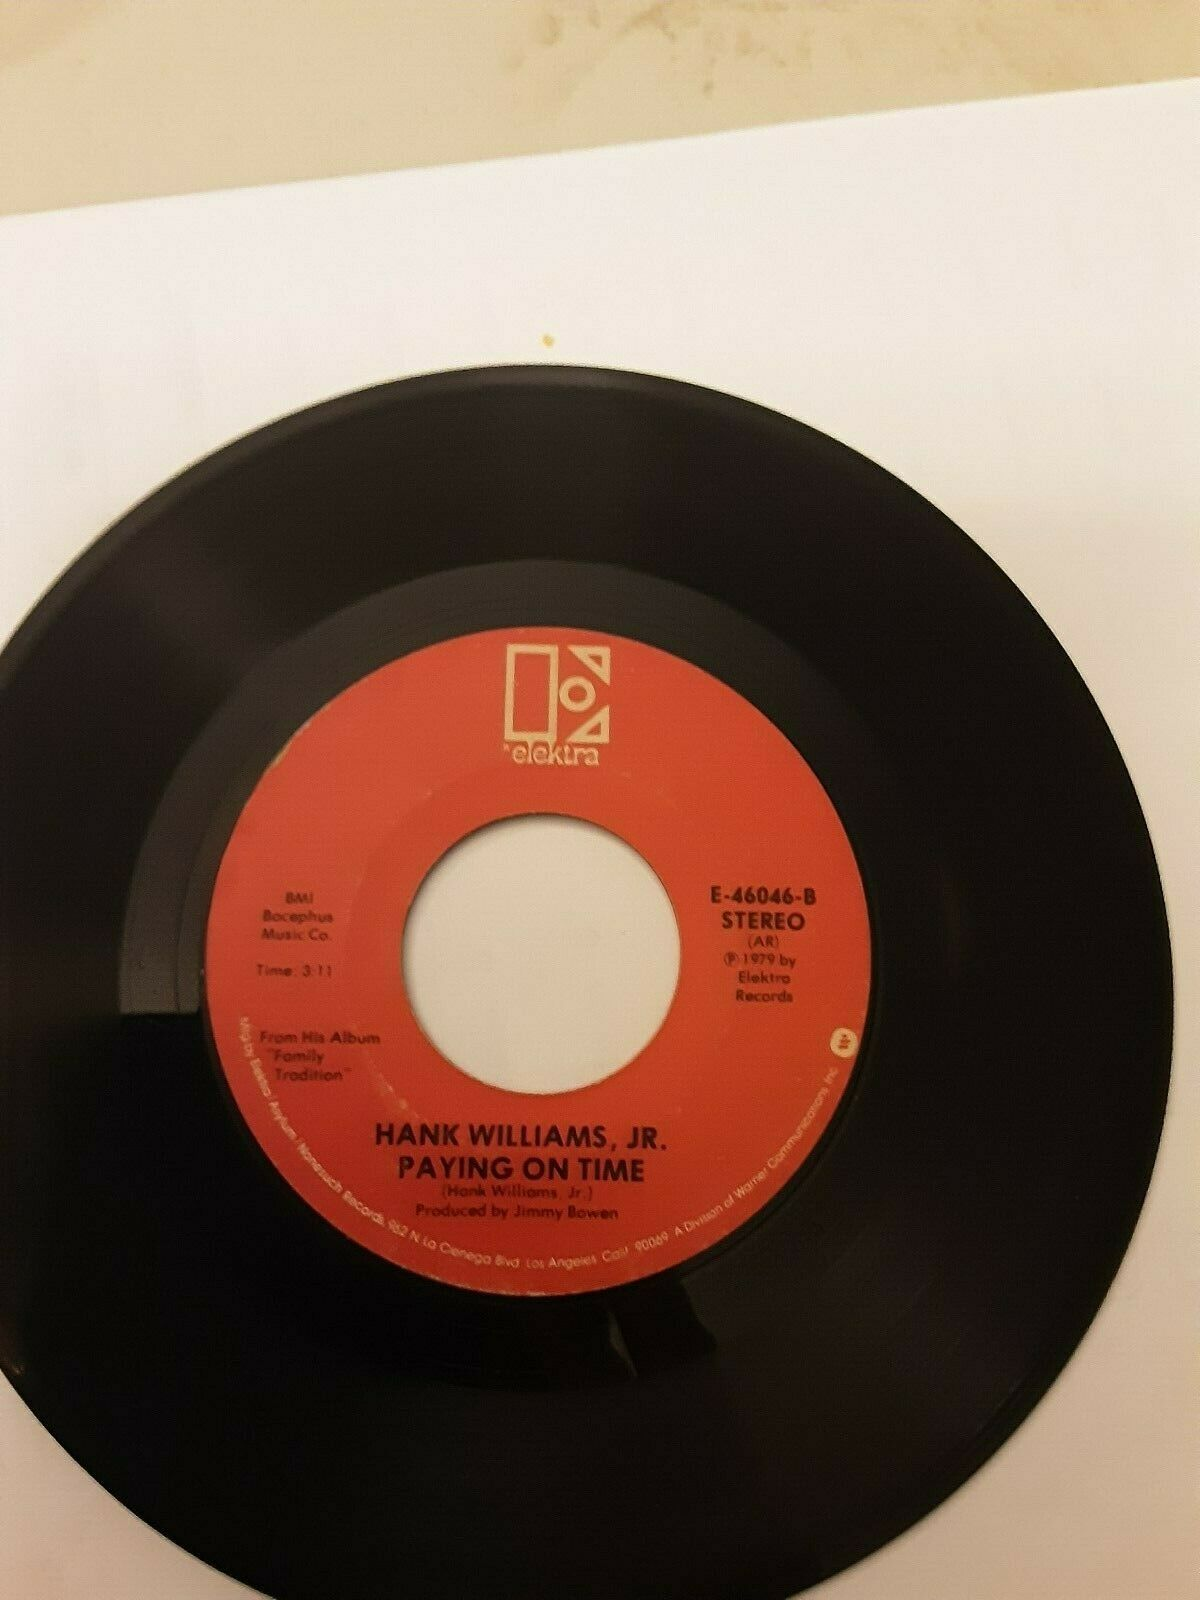 Hank Williams Jr. 45 Single Paying On Time Family Tradition  - $1.99